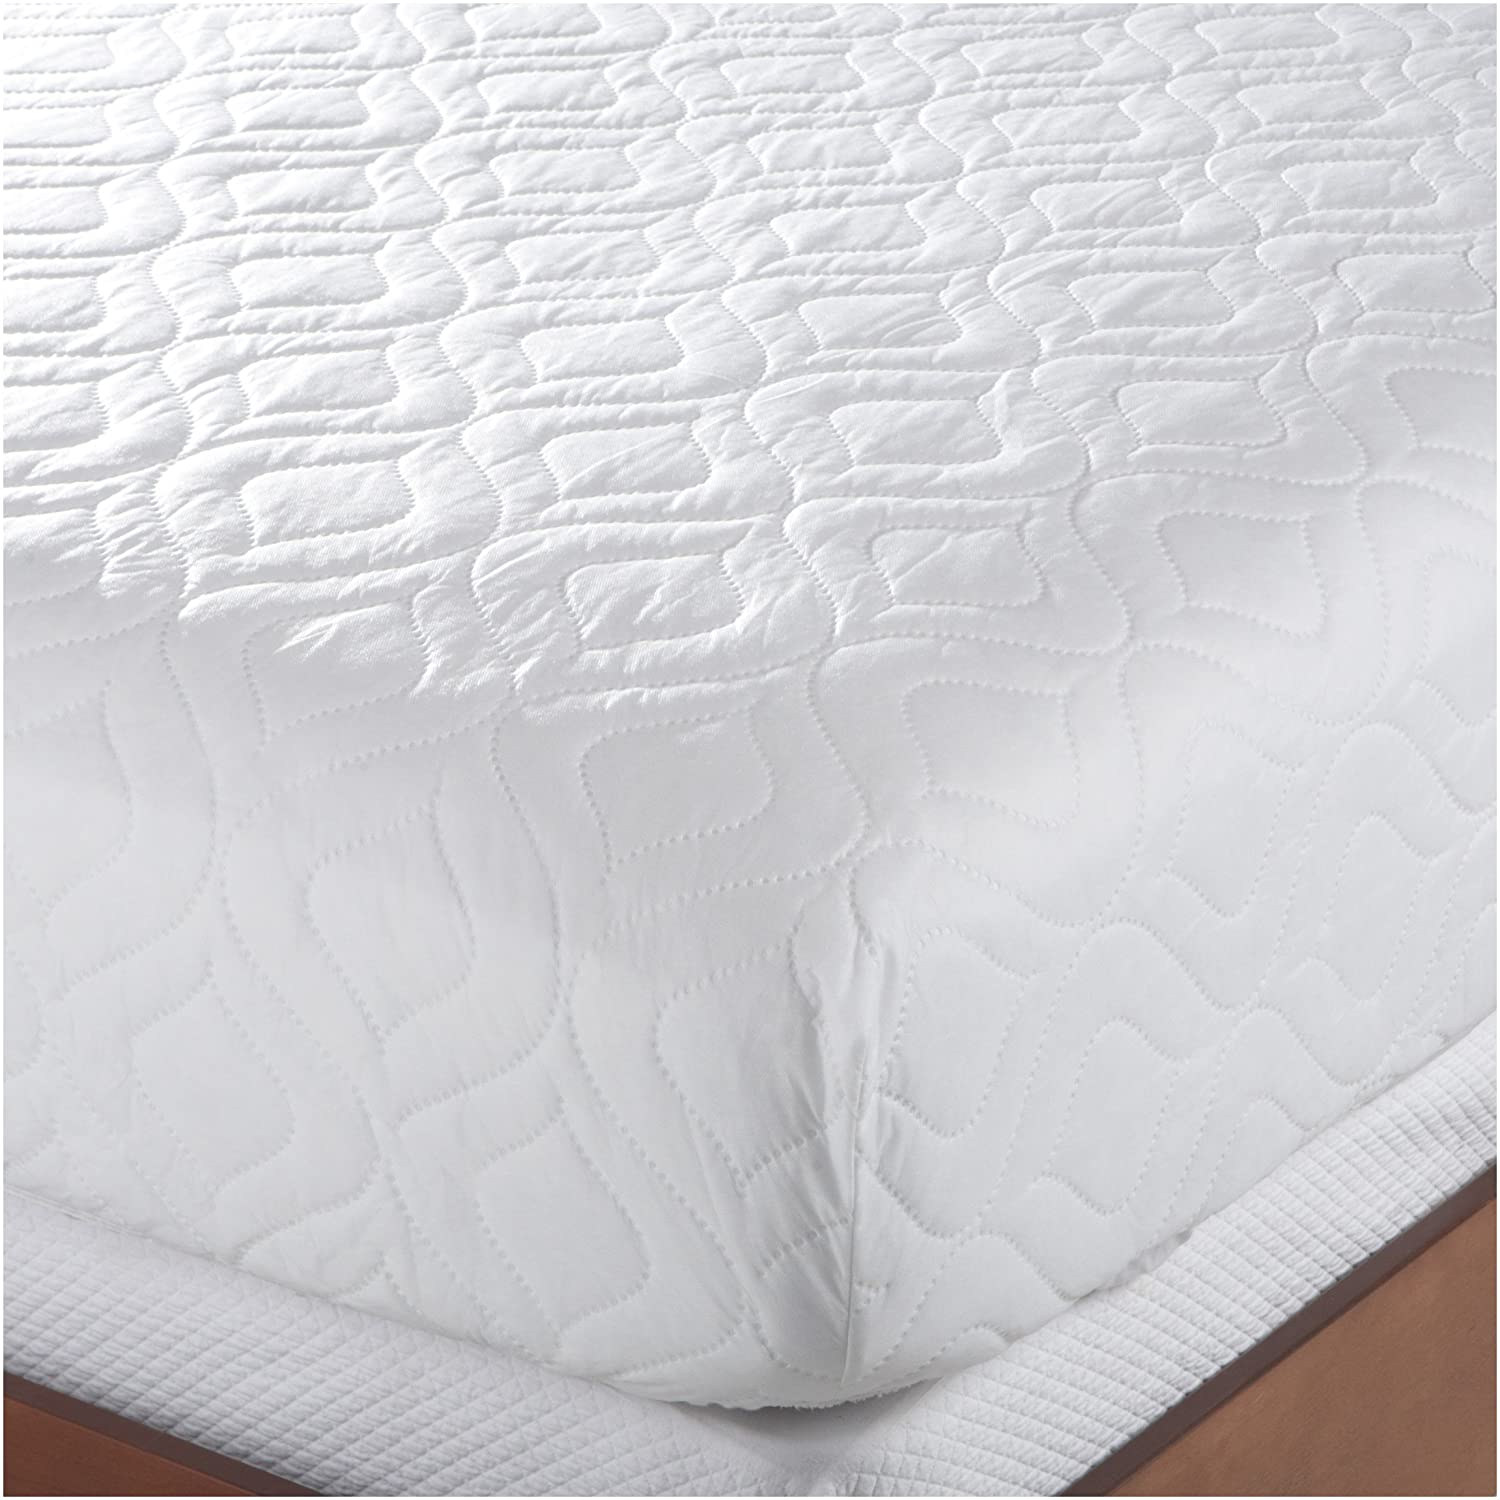 topper pillow serenity cushion walmartcom reddit best blanket gallery wave my graphite reviews top dream mattress